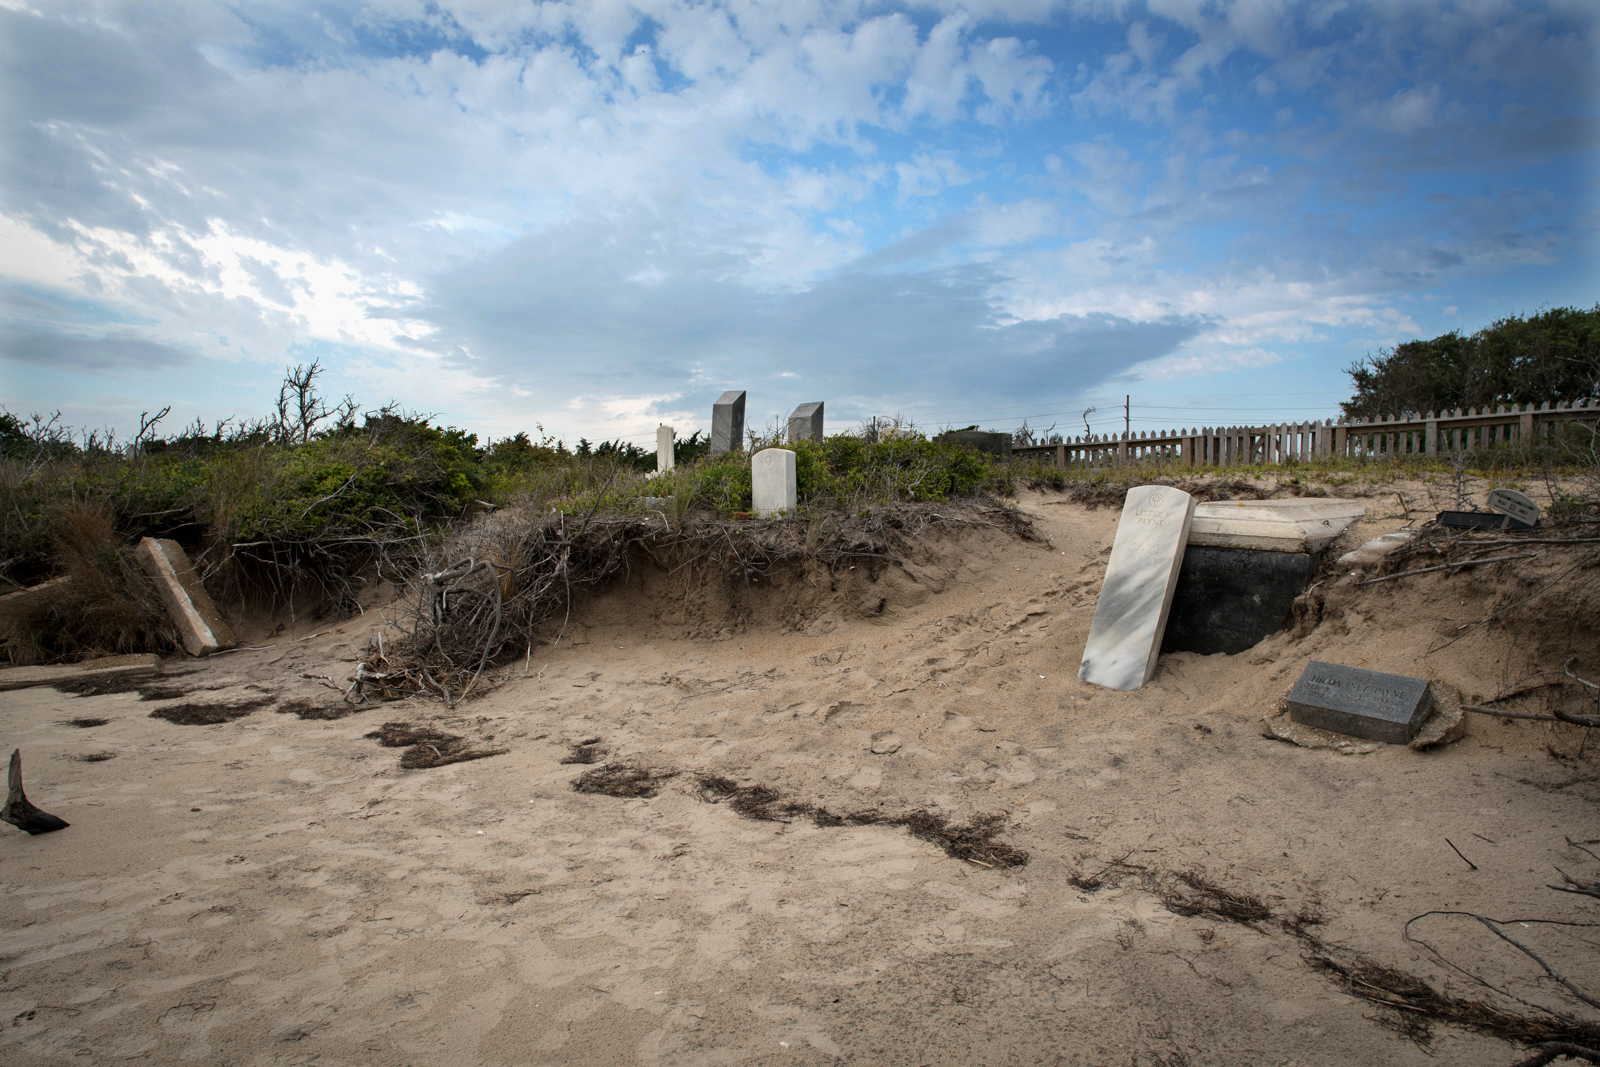 A private graveyard is slowly claimed by erosion and high waters in the Salvo Day Use Area on Cape Hatteras National Seashore. It is surrounded on three sides by national park land and Pamlico Sound on the other. The North Carolina gravesite existed long before the area became a park in 1965.